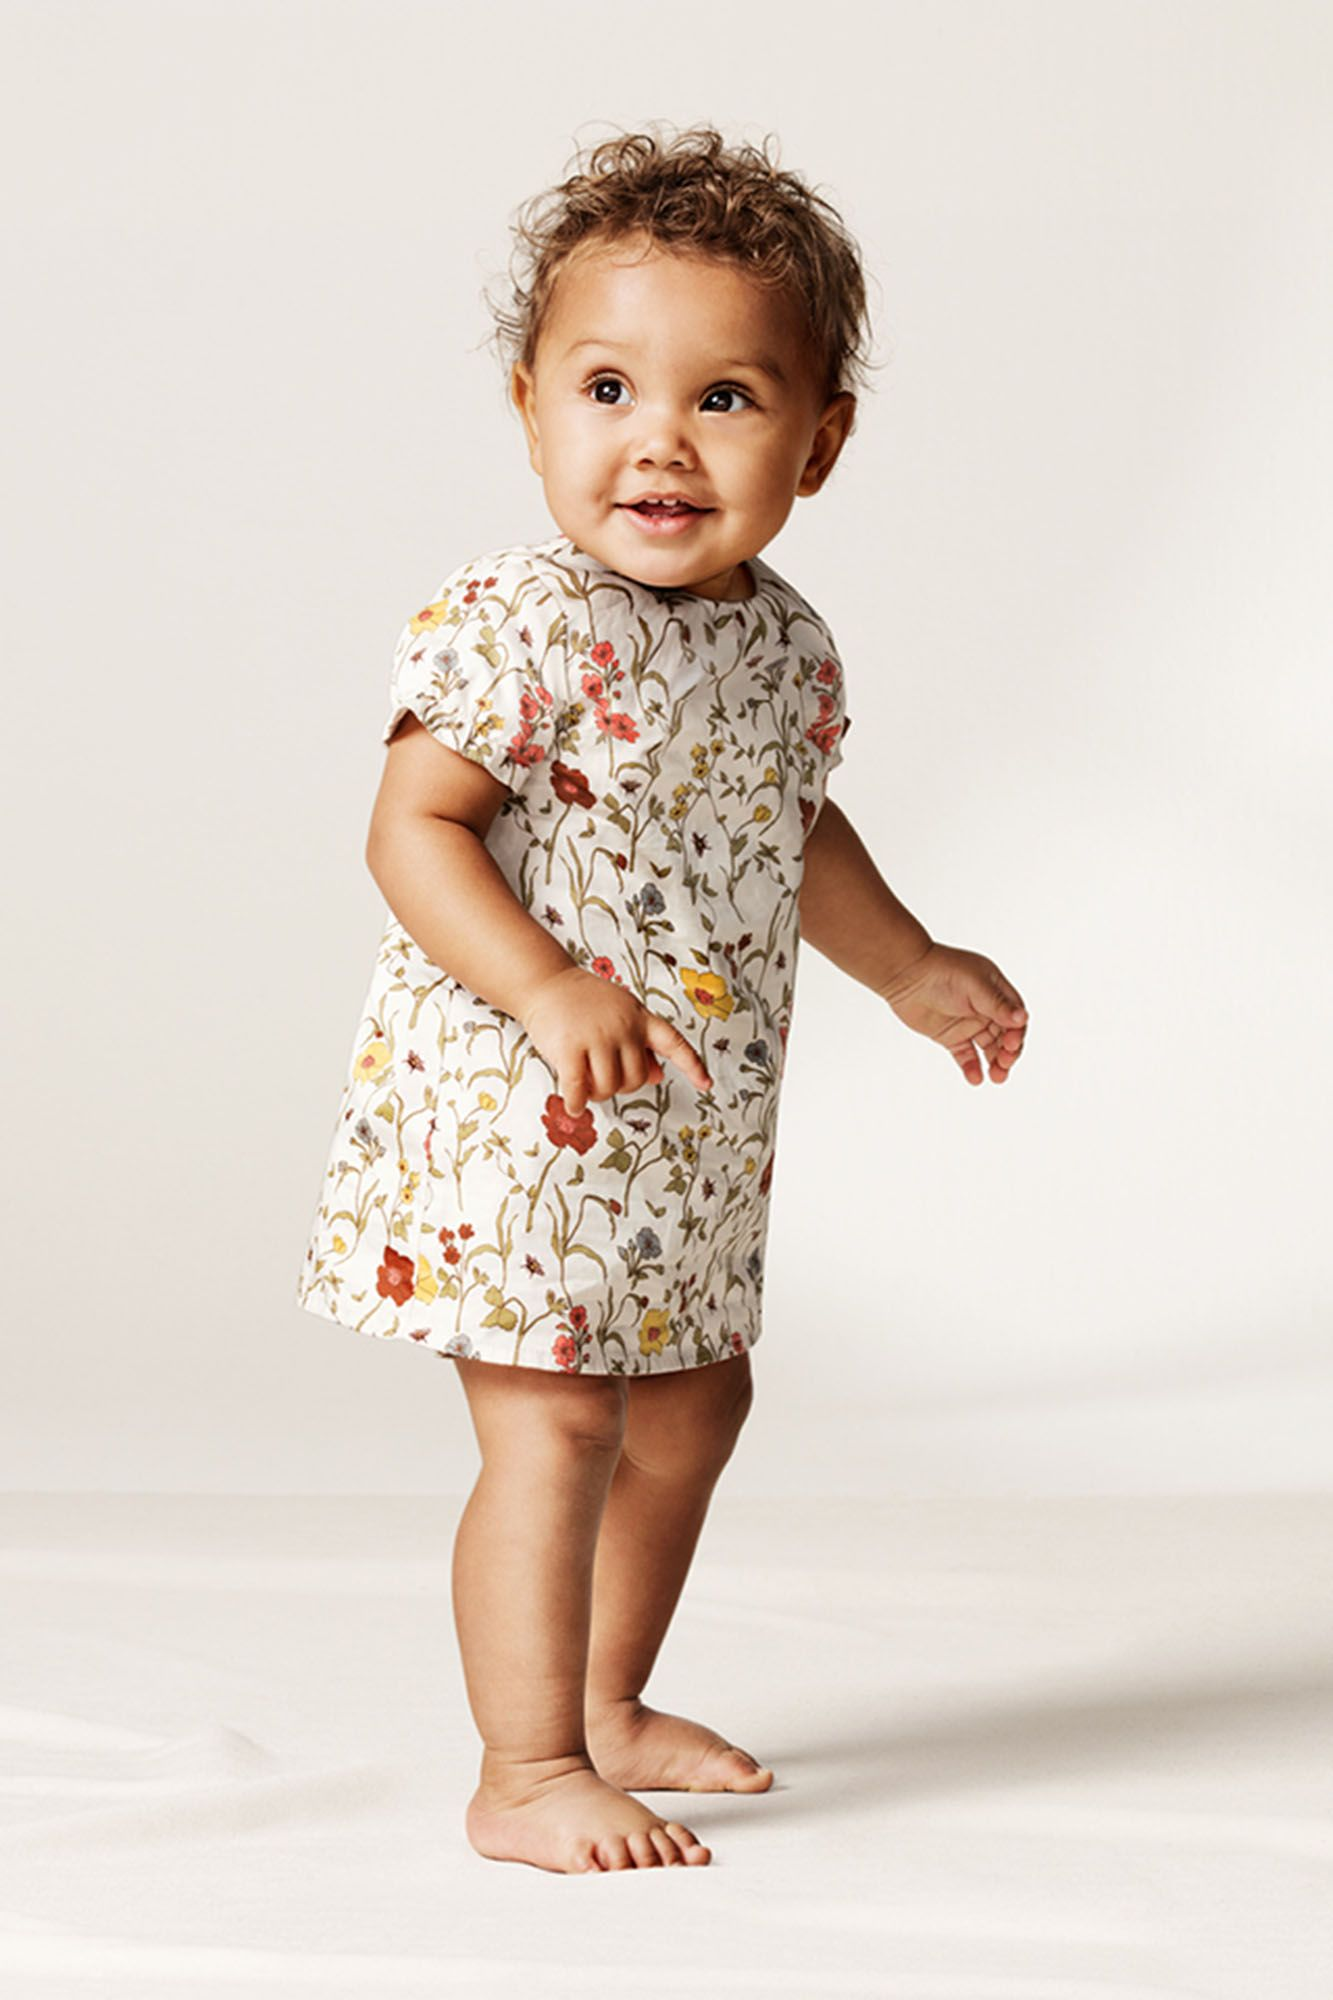 Baby Exclusive | H&M Kids | H&M - FOR THE KIDS | Pinterest